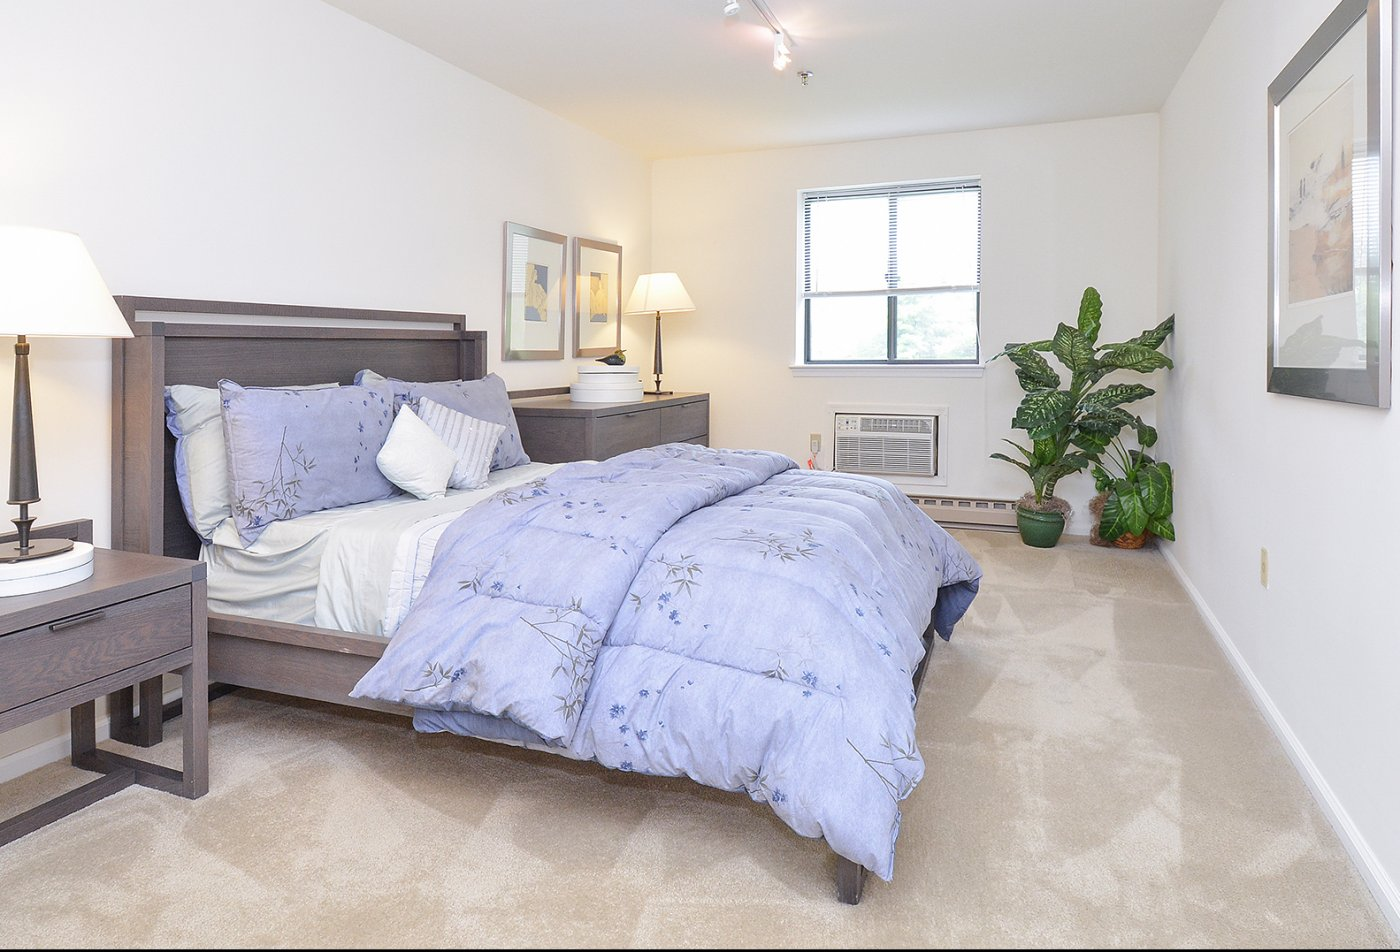 Luxurious Bedroom | Apartments in King of Prussia, PA | Valley Forge Suites